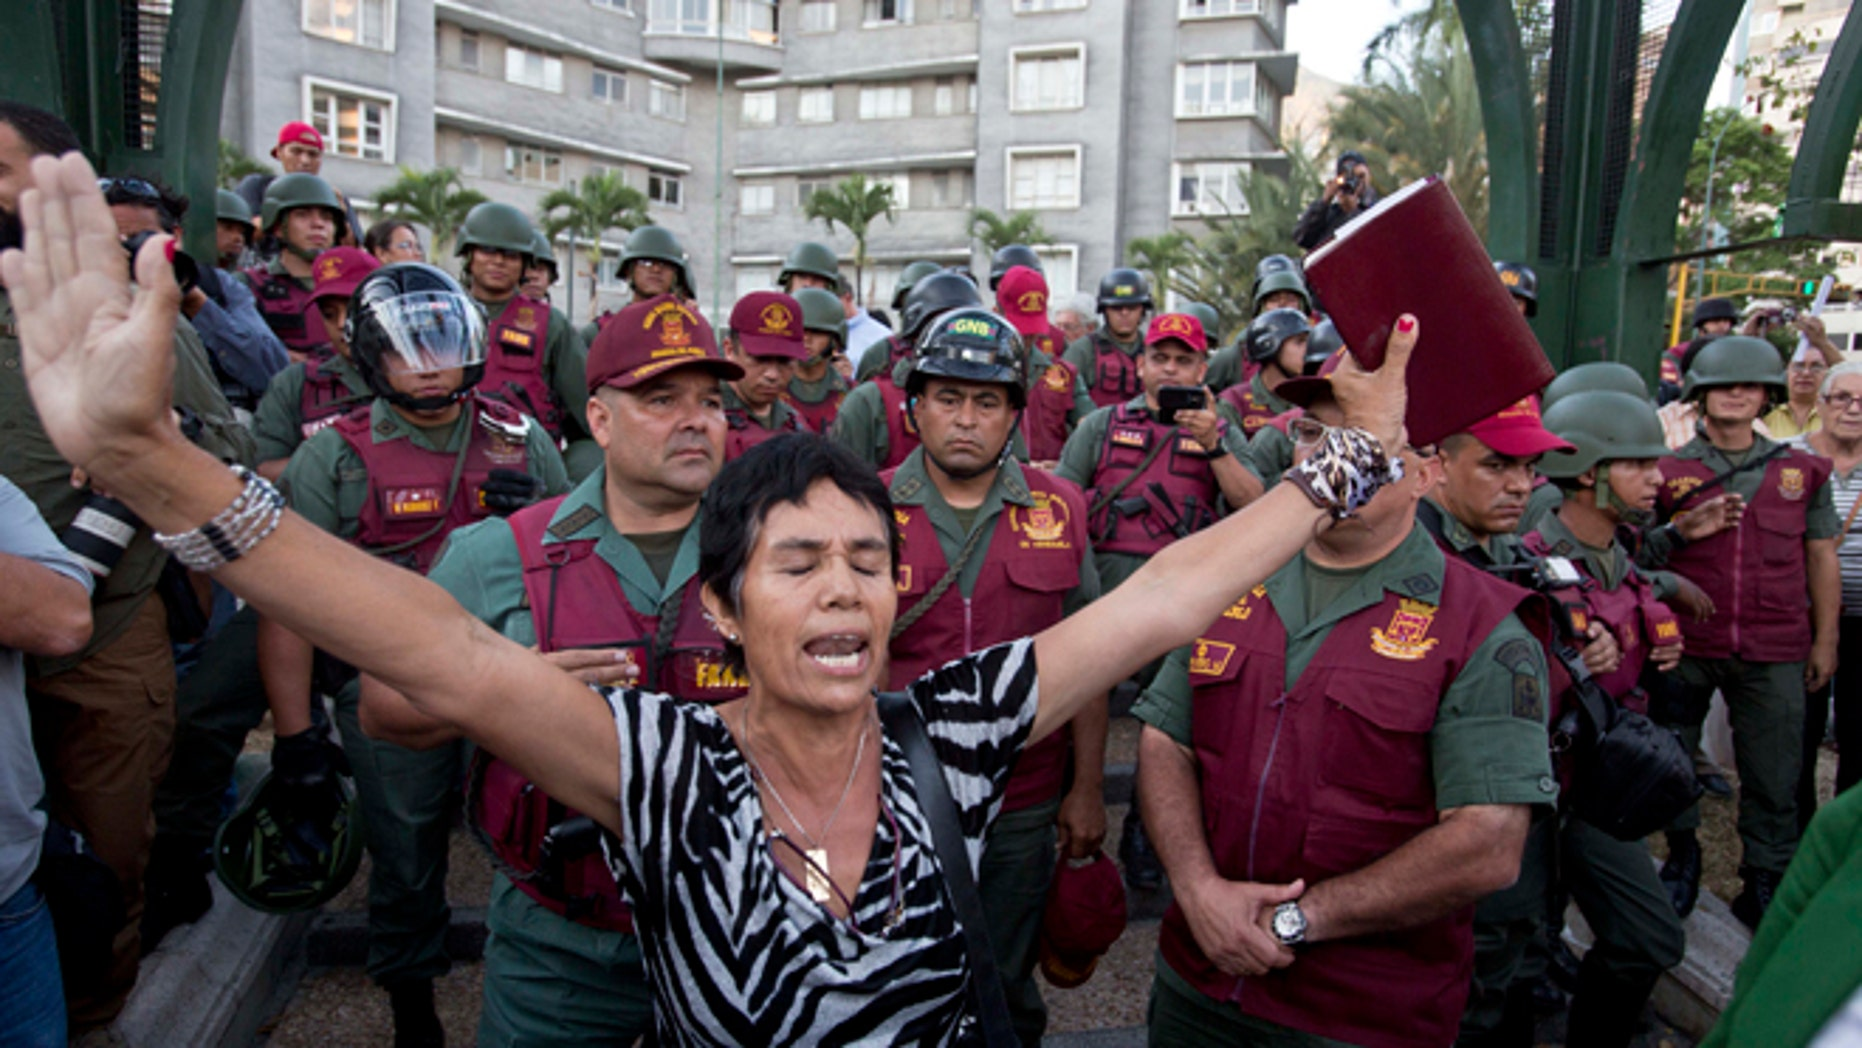 A woman prays with a bible in her hand, in front of Bolivarian National Guard officers during an anti-government protest in Plaza Altamira, Caracas, Venezuela, Tuesday, March 18, 2014. Protesters blocked the streets only when traffic lights turned red under the watchful gaze of the National Guard. Security forces have taken control of the plaza that has been at the heart of anti-government protests that have shaken Venezuela for a month. (AP Photo/Esteban Felix)